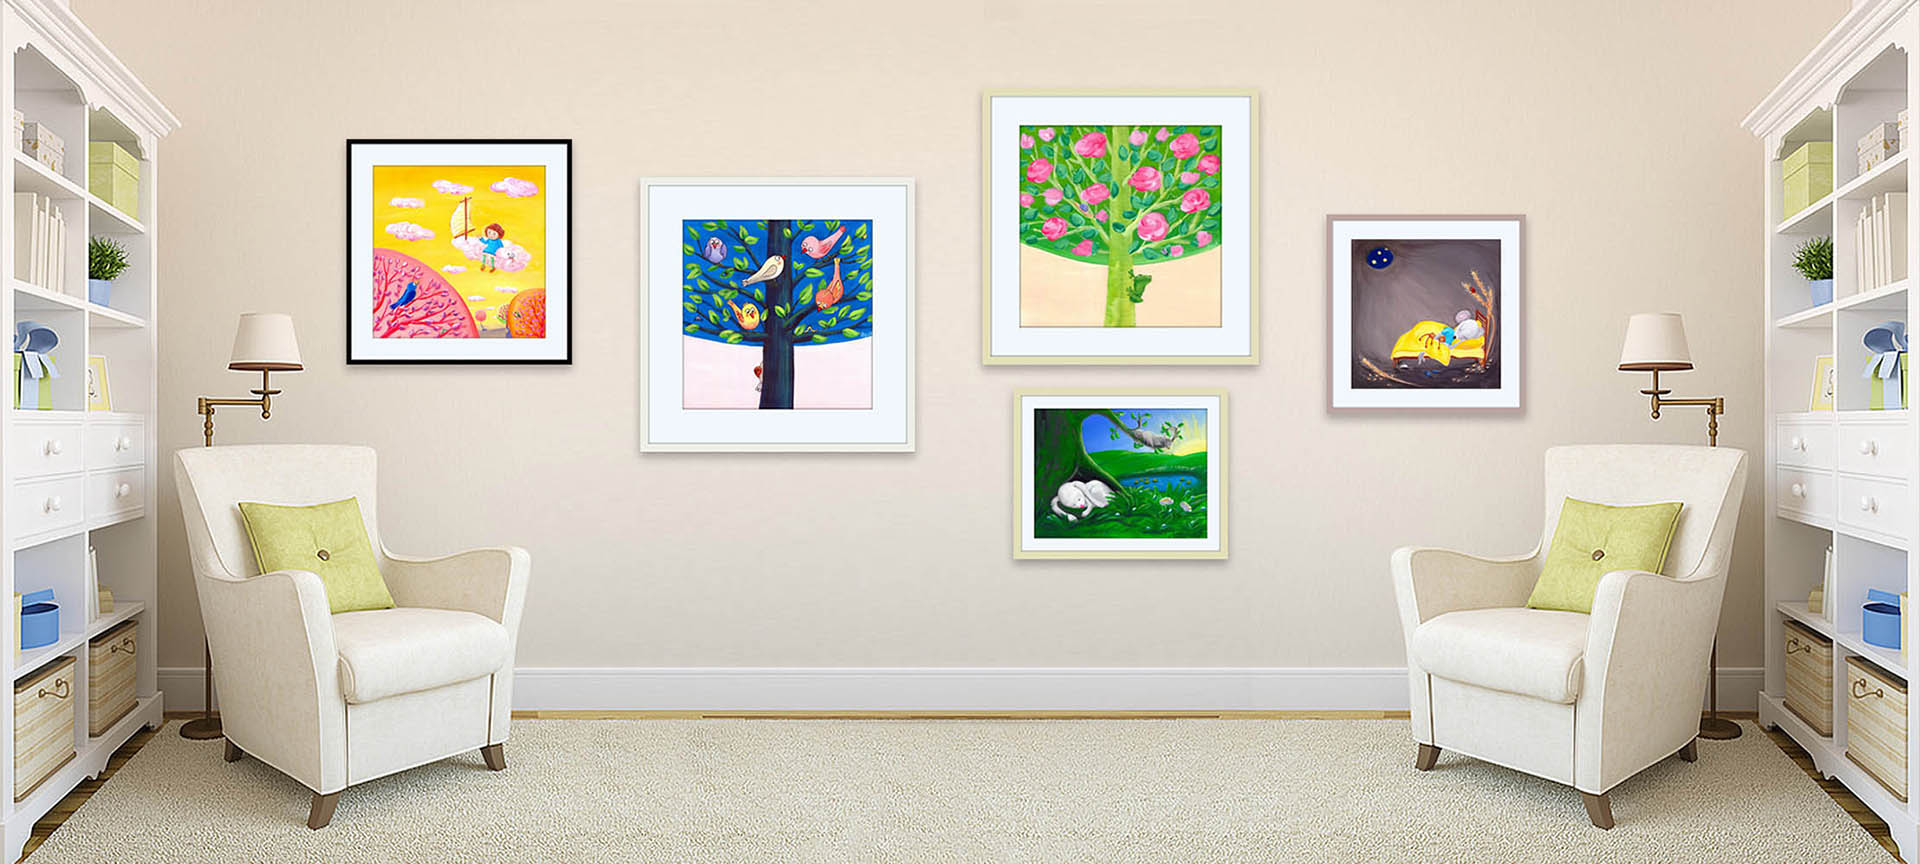 Colorful kids wall art pictures in a light interior.